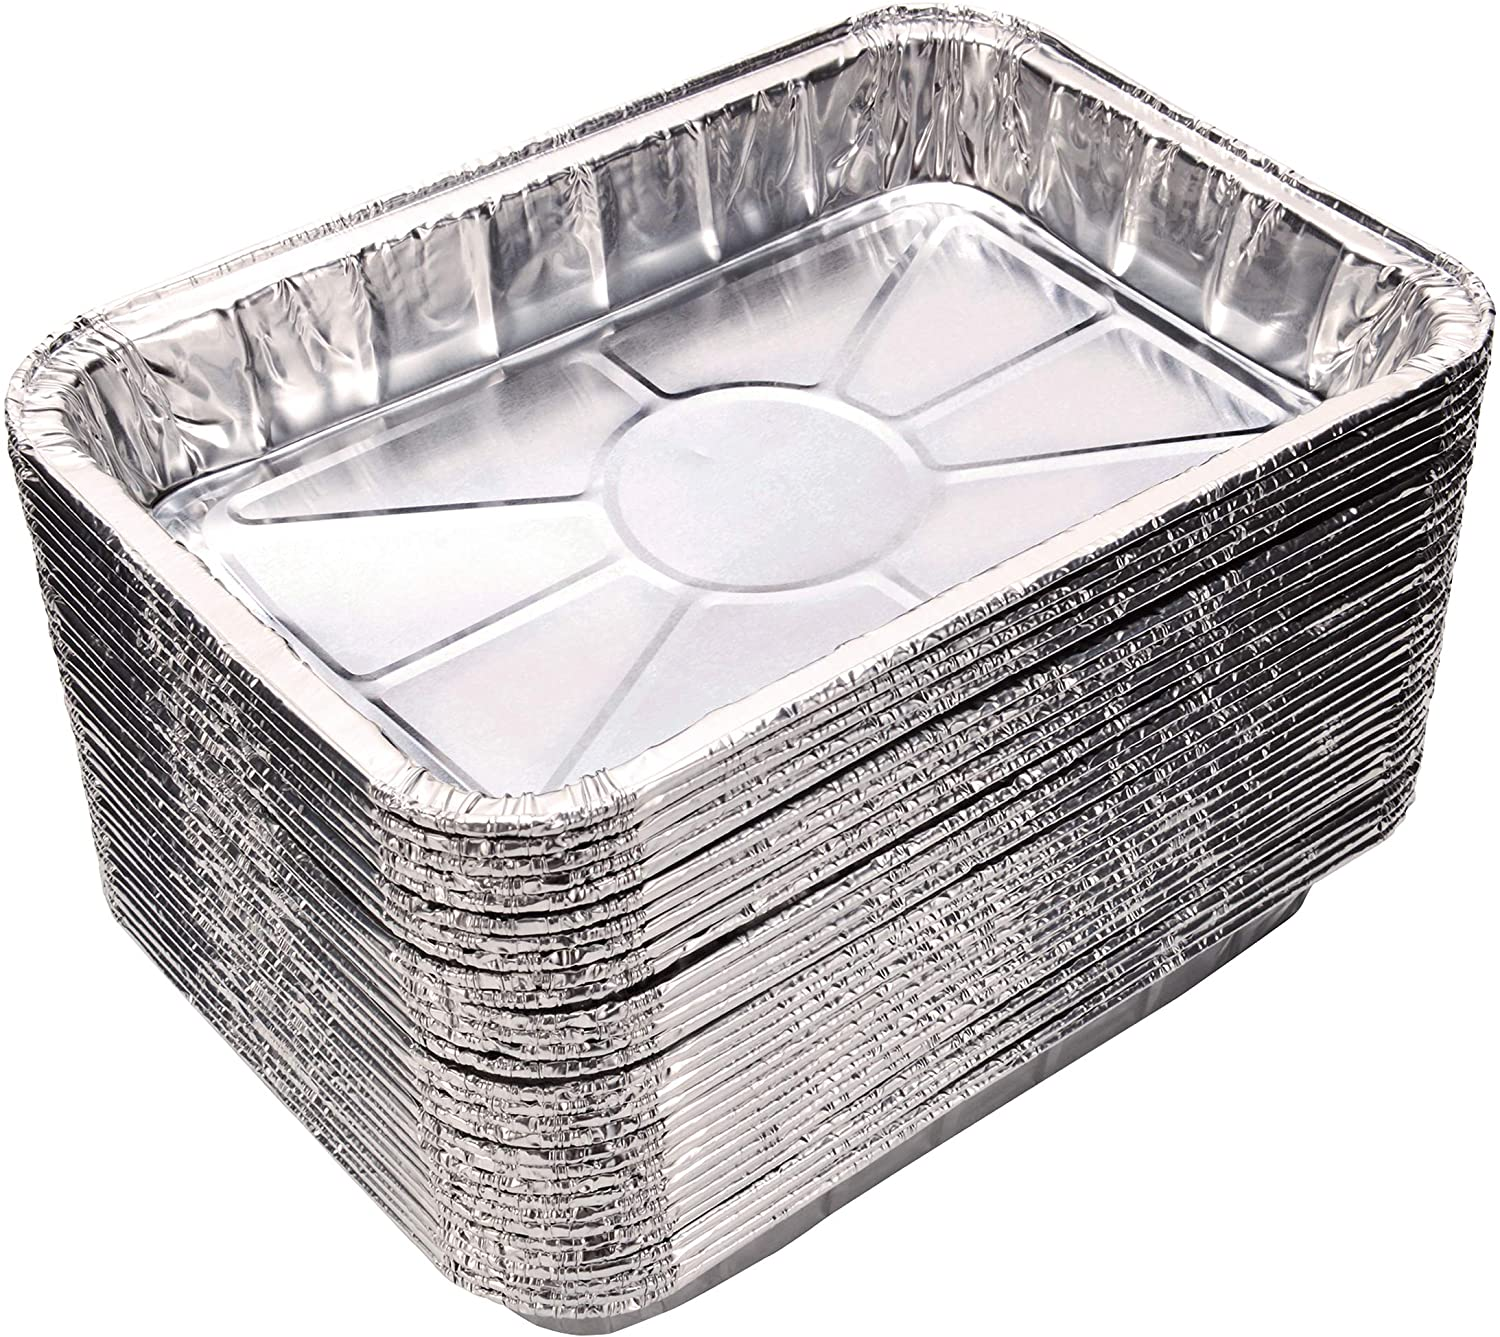 Toaster Oven Pans (20-Pack) - Disposable Aluminum Foil Toaster Oven Pans; fits all standard sized toaster ovens, Size - 8 1/2